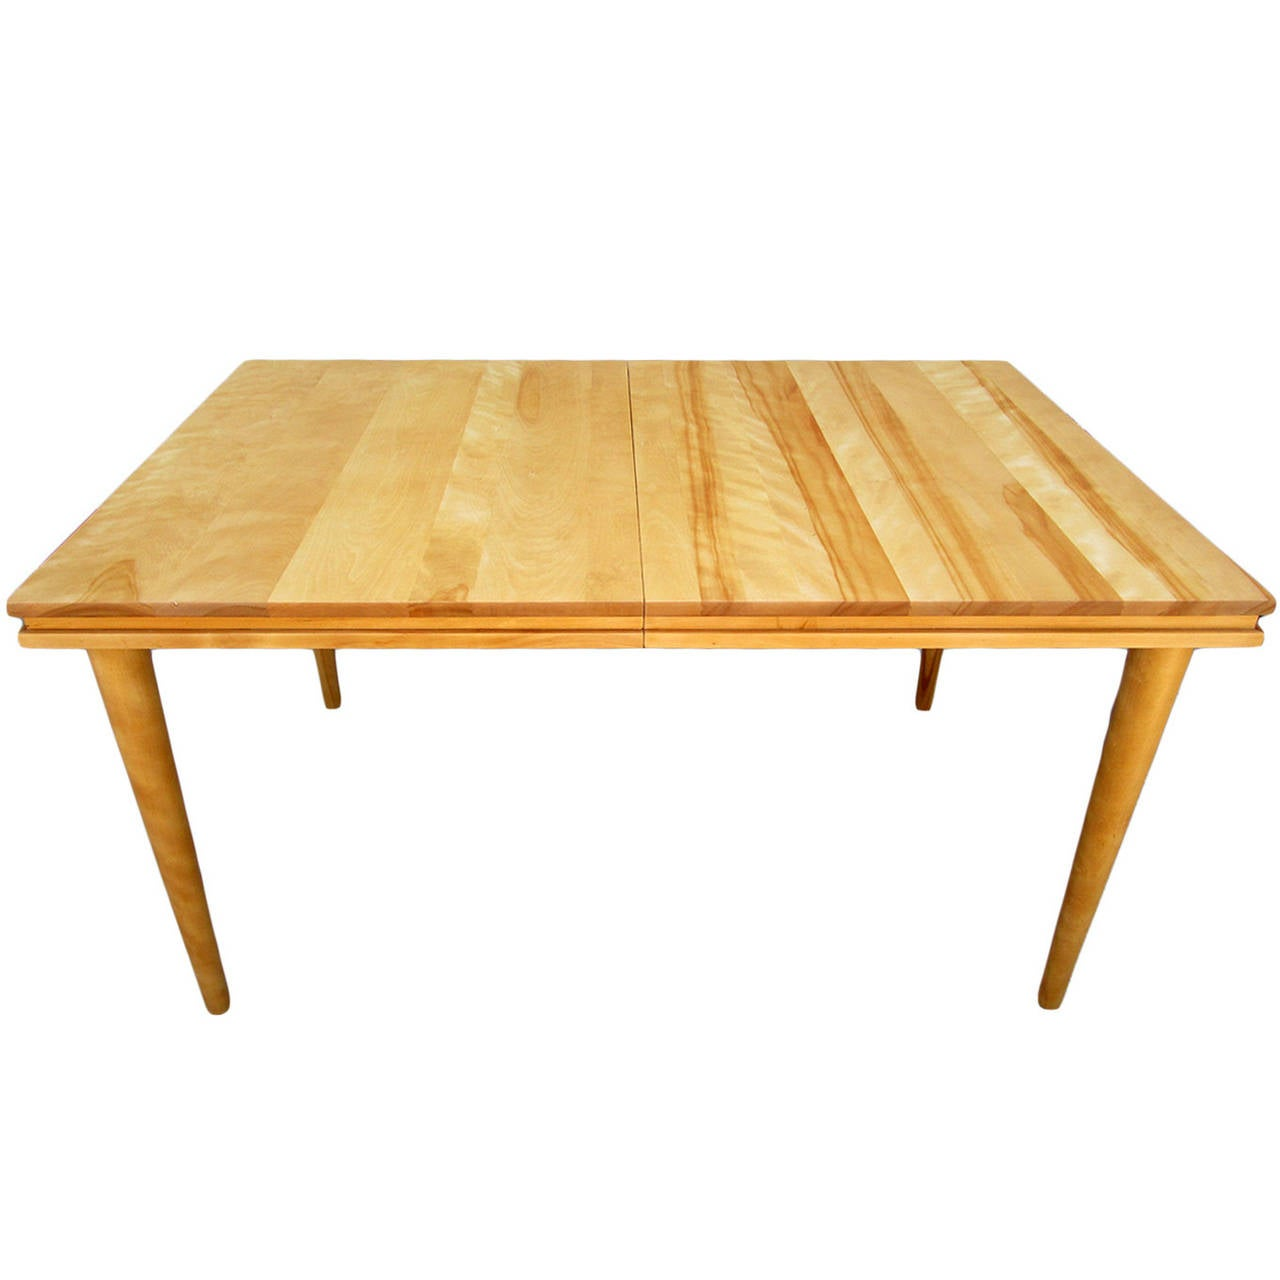 Russel Wright Solid Maple Dining Table at 1stdibs : 1l from www.1stdibs.com size 1280 x 1280 jpeg 63kB